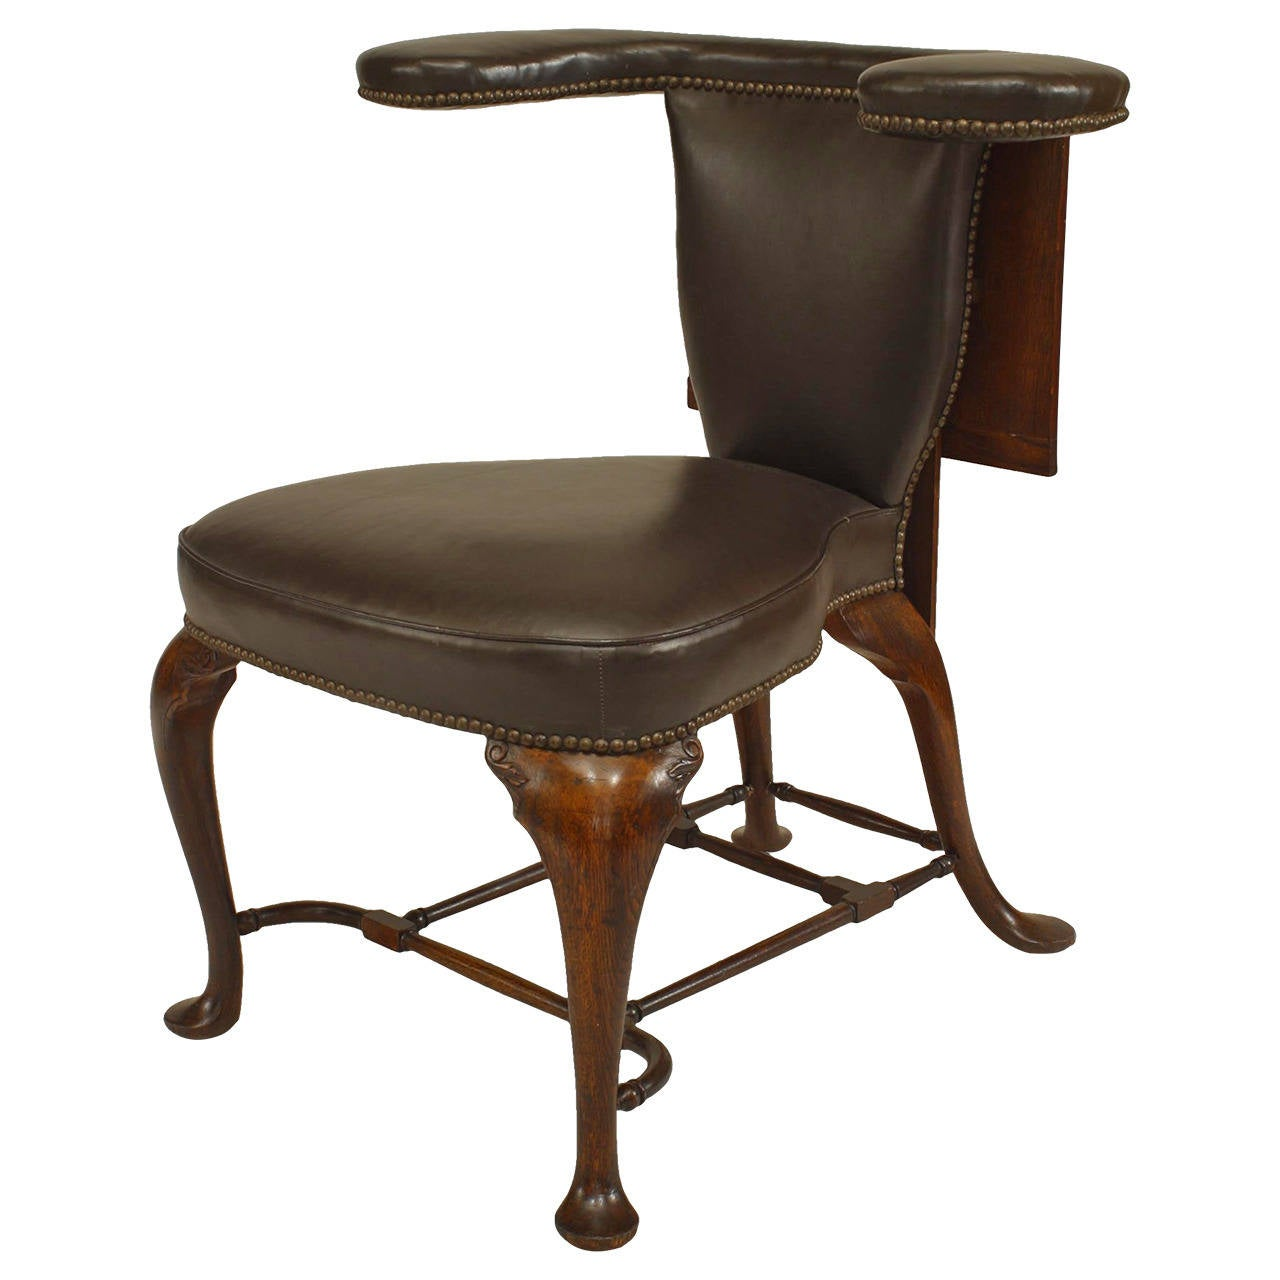 Remarkable 19Th Century English Queen Anne Style Leather Upholstered Reading Chair Caraccident5 Cool Chair Designs And Ideas Caraccident5Info